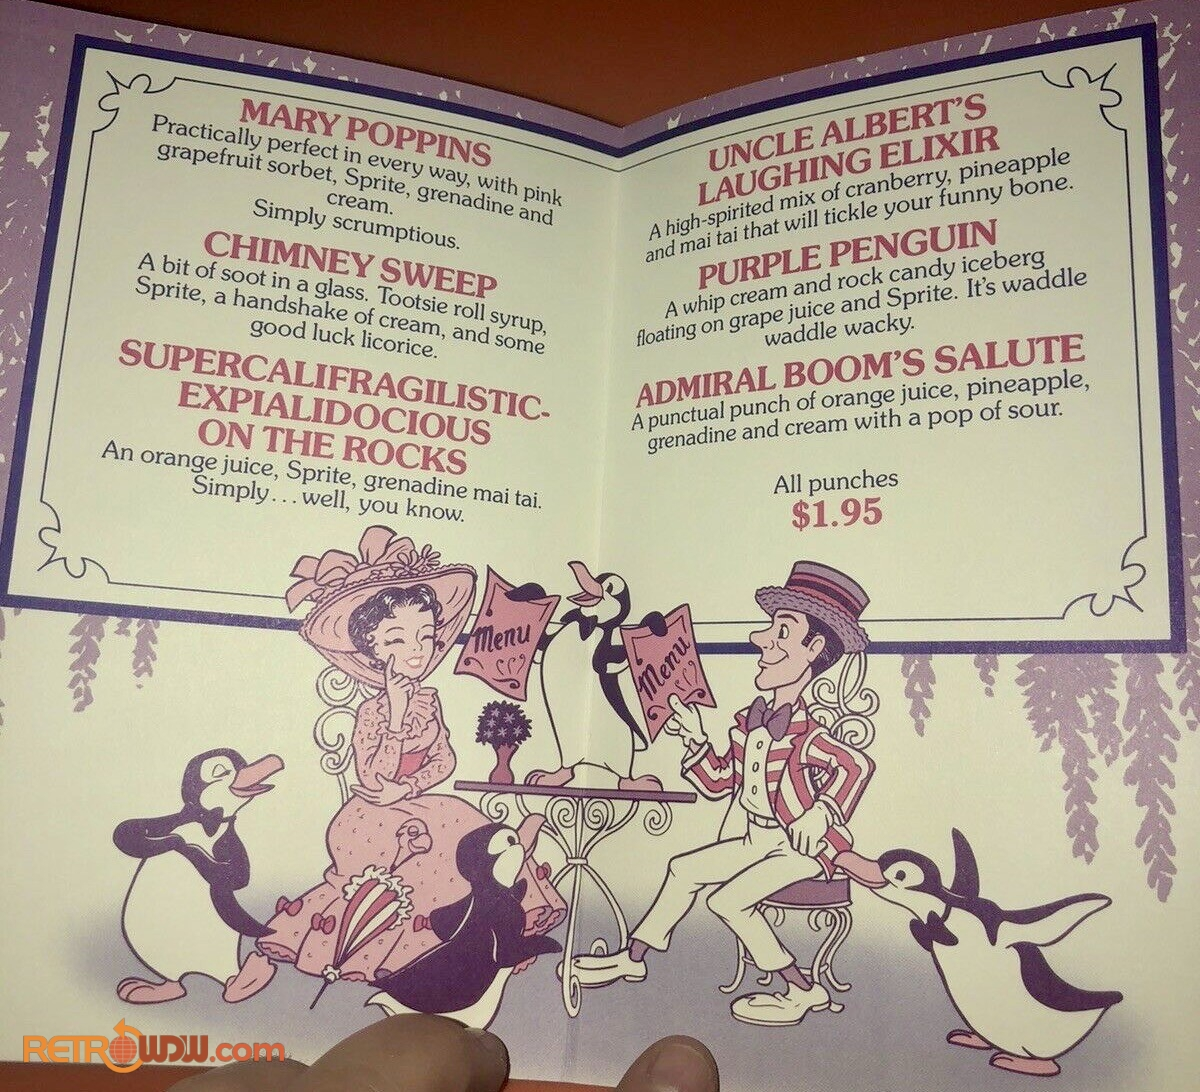 1900 Park Faire Childrens Drink Menu (1989)